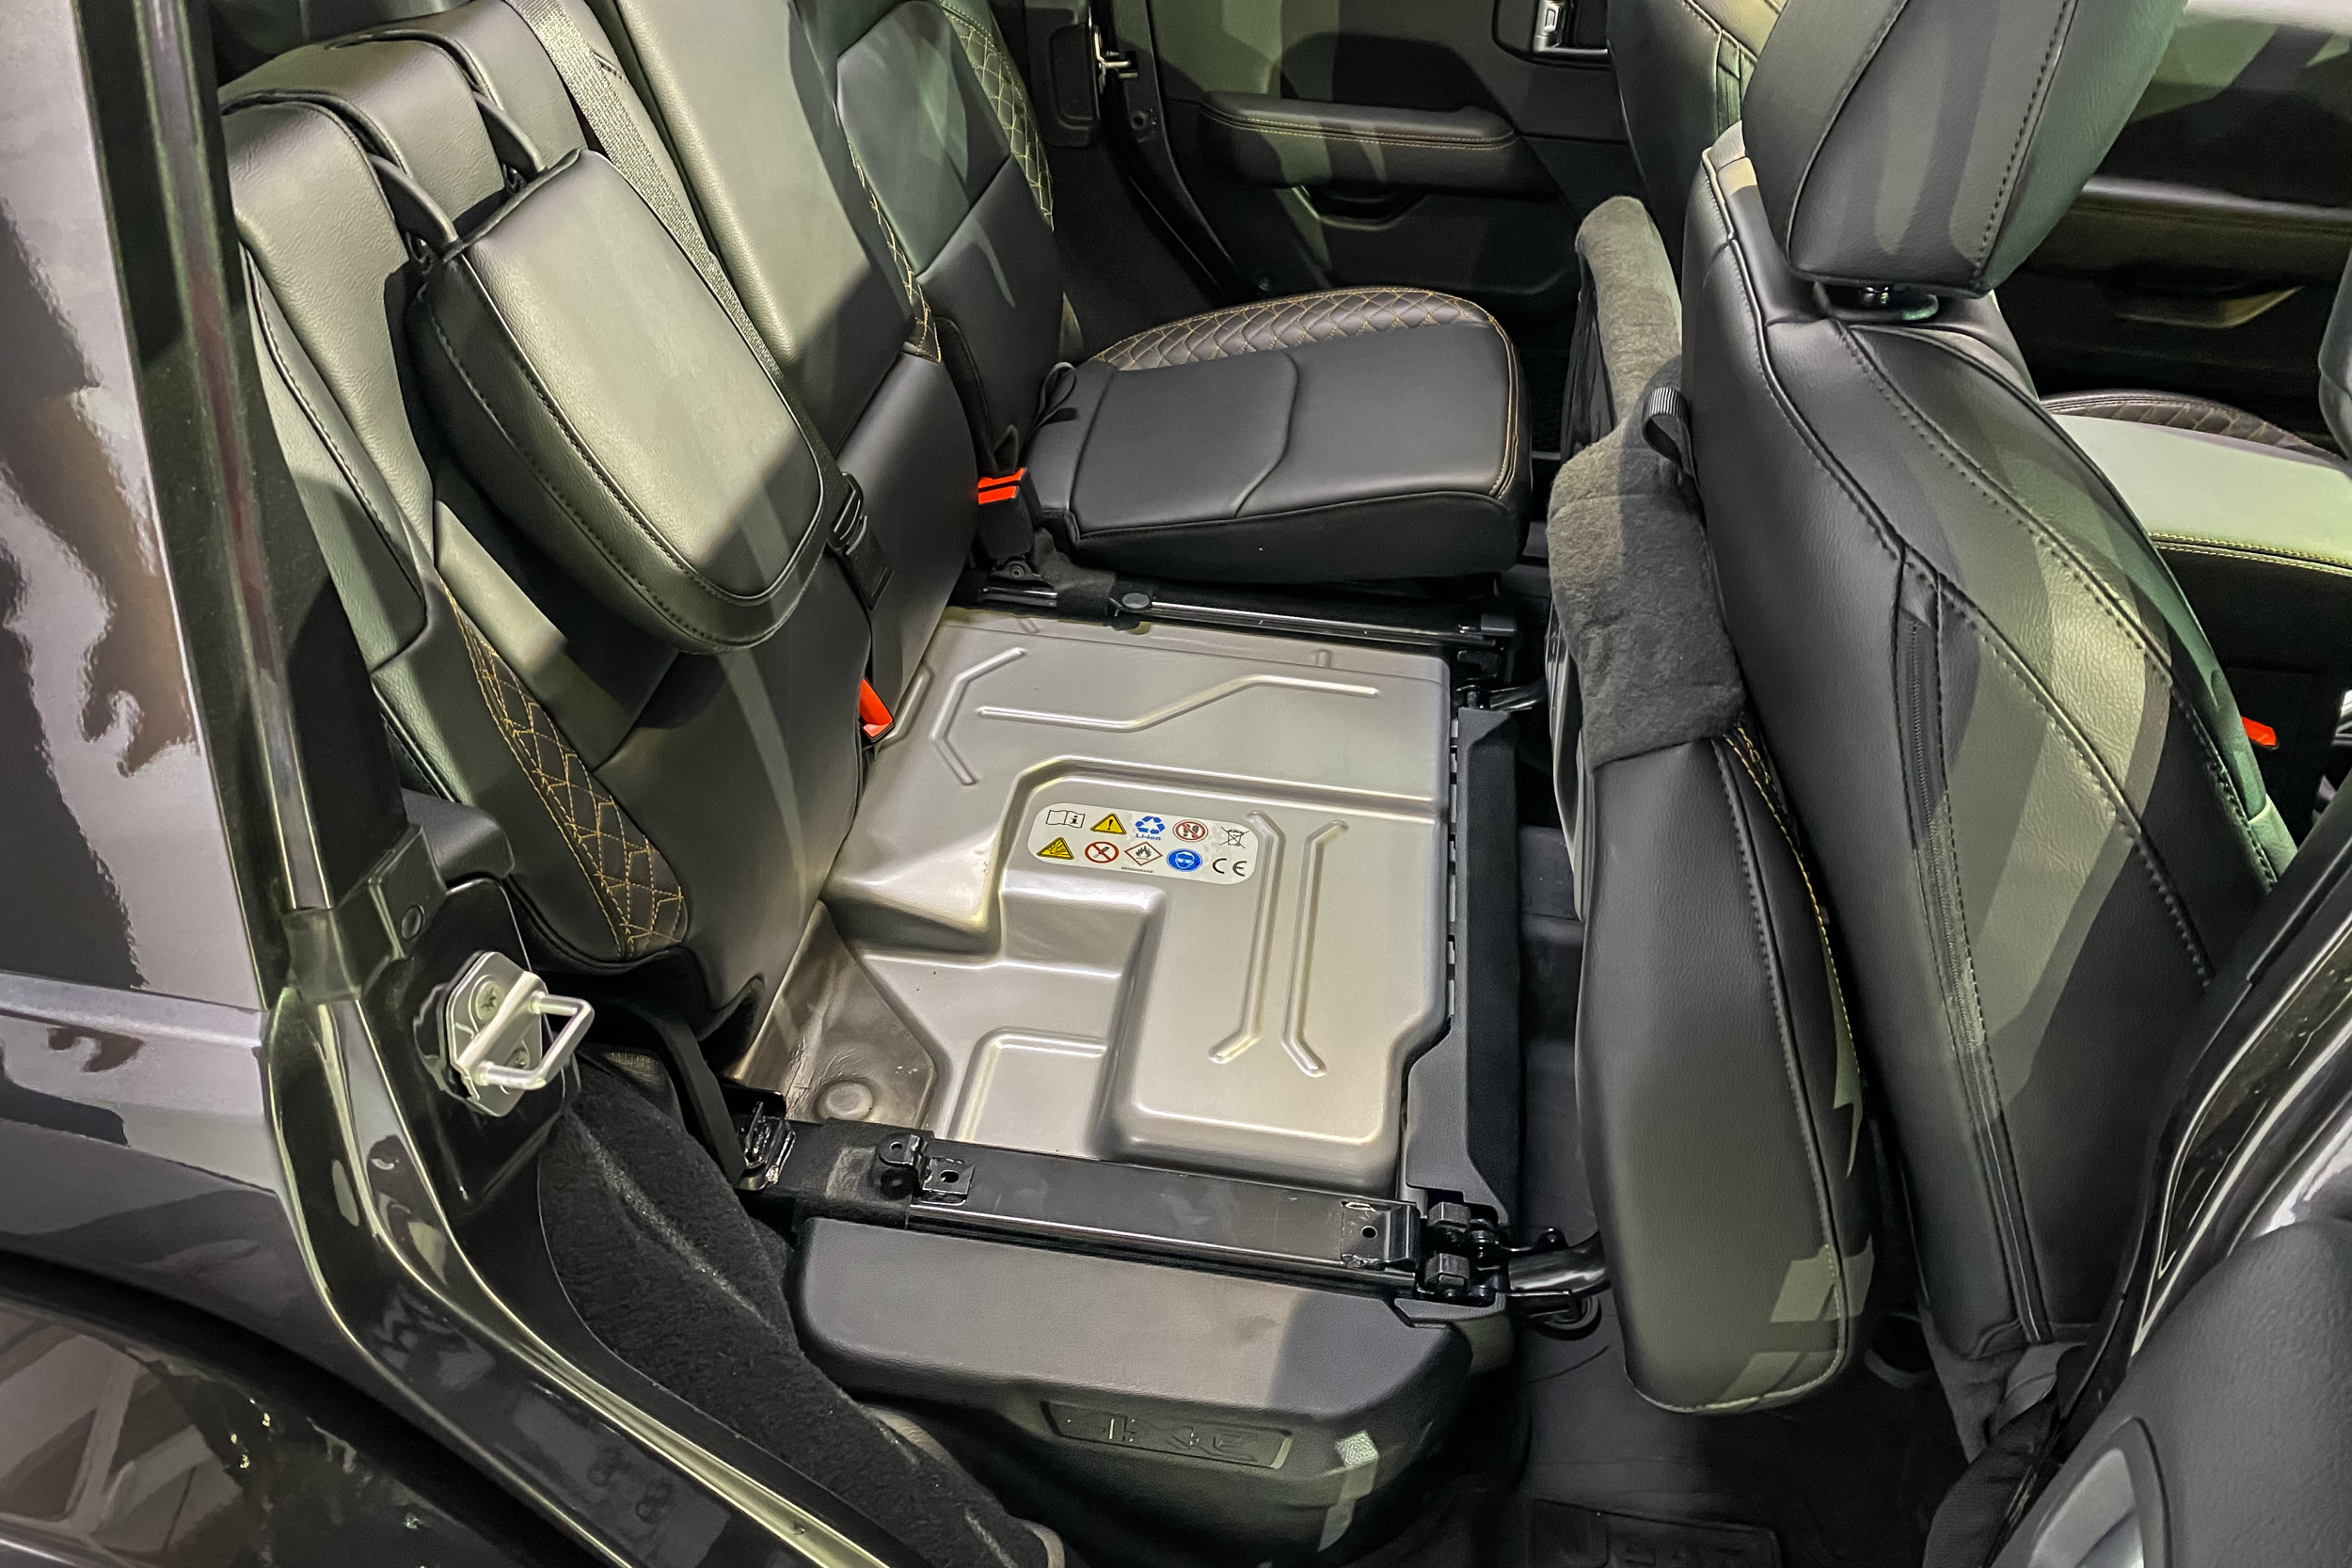 2021 Jeep Wrangler 4Xe under seat battery pack